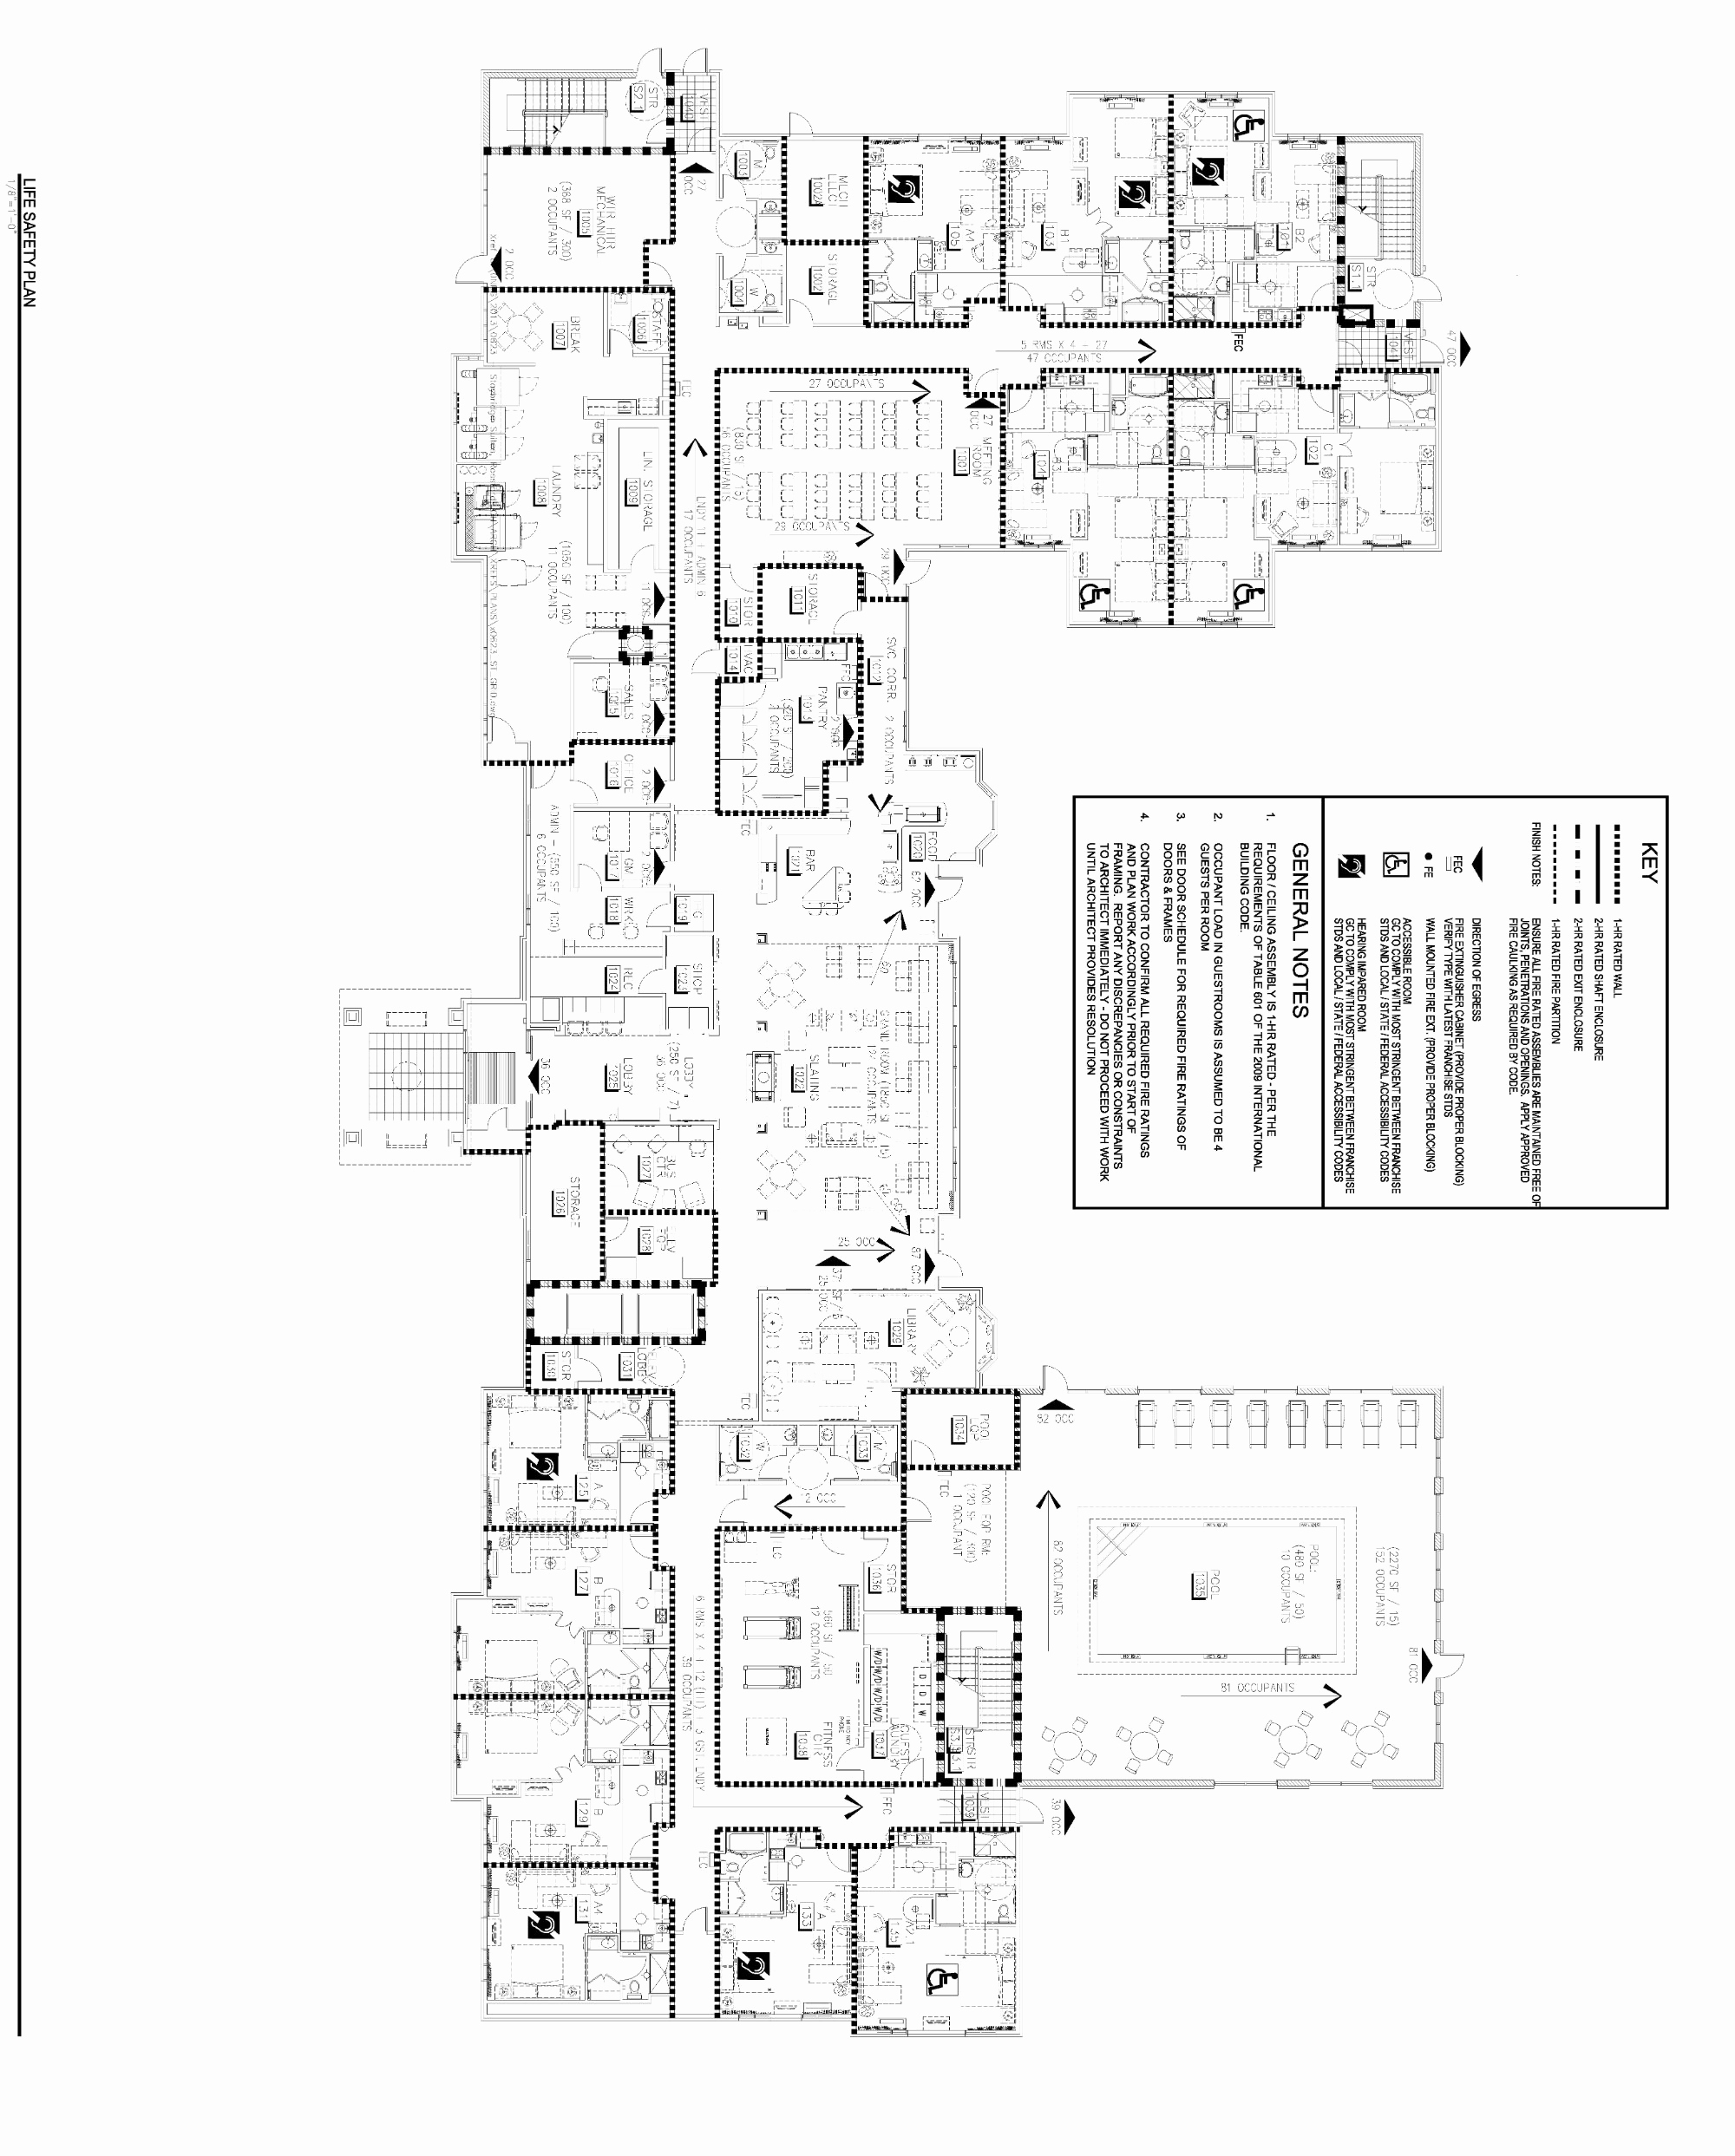 Architectural drawing symbols free download at getdrawings for Architectural floor plan symbols